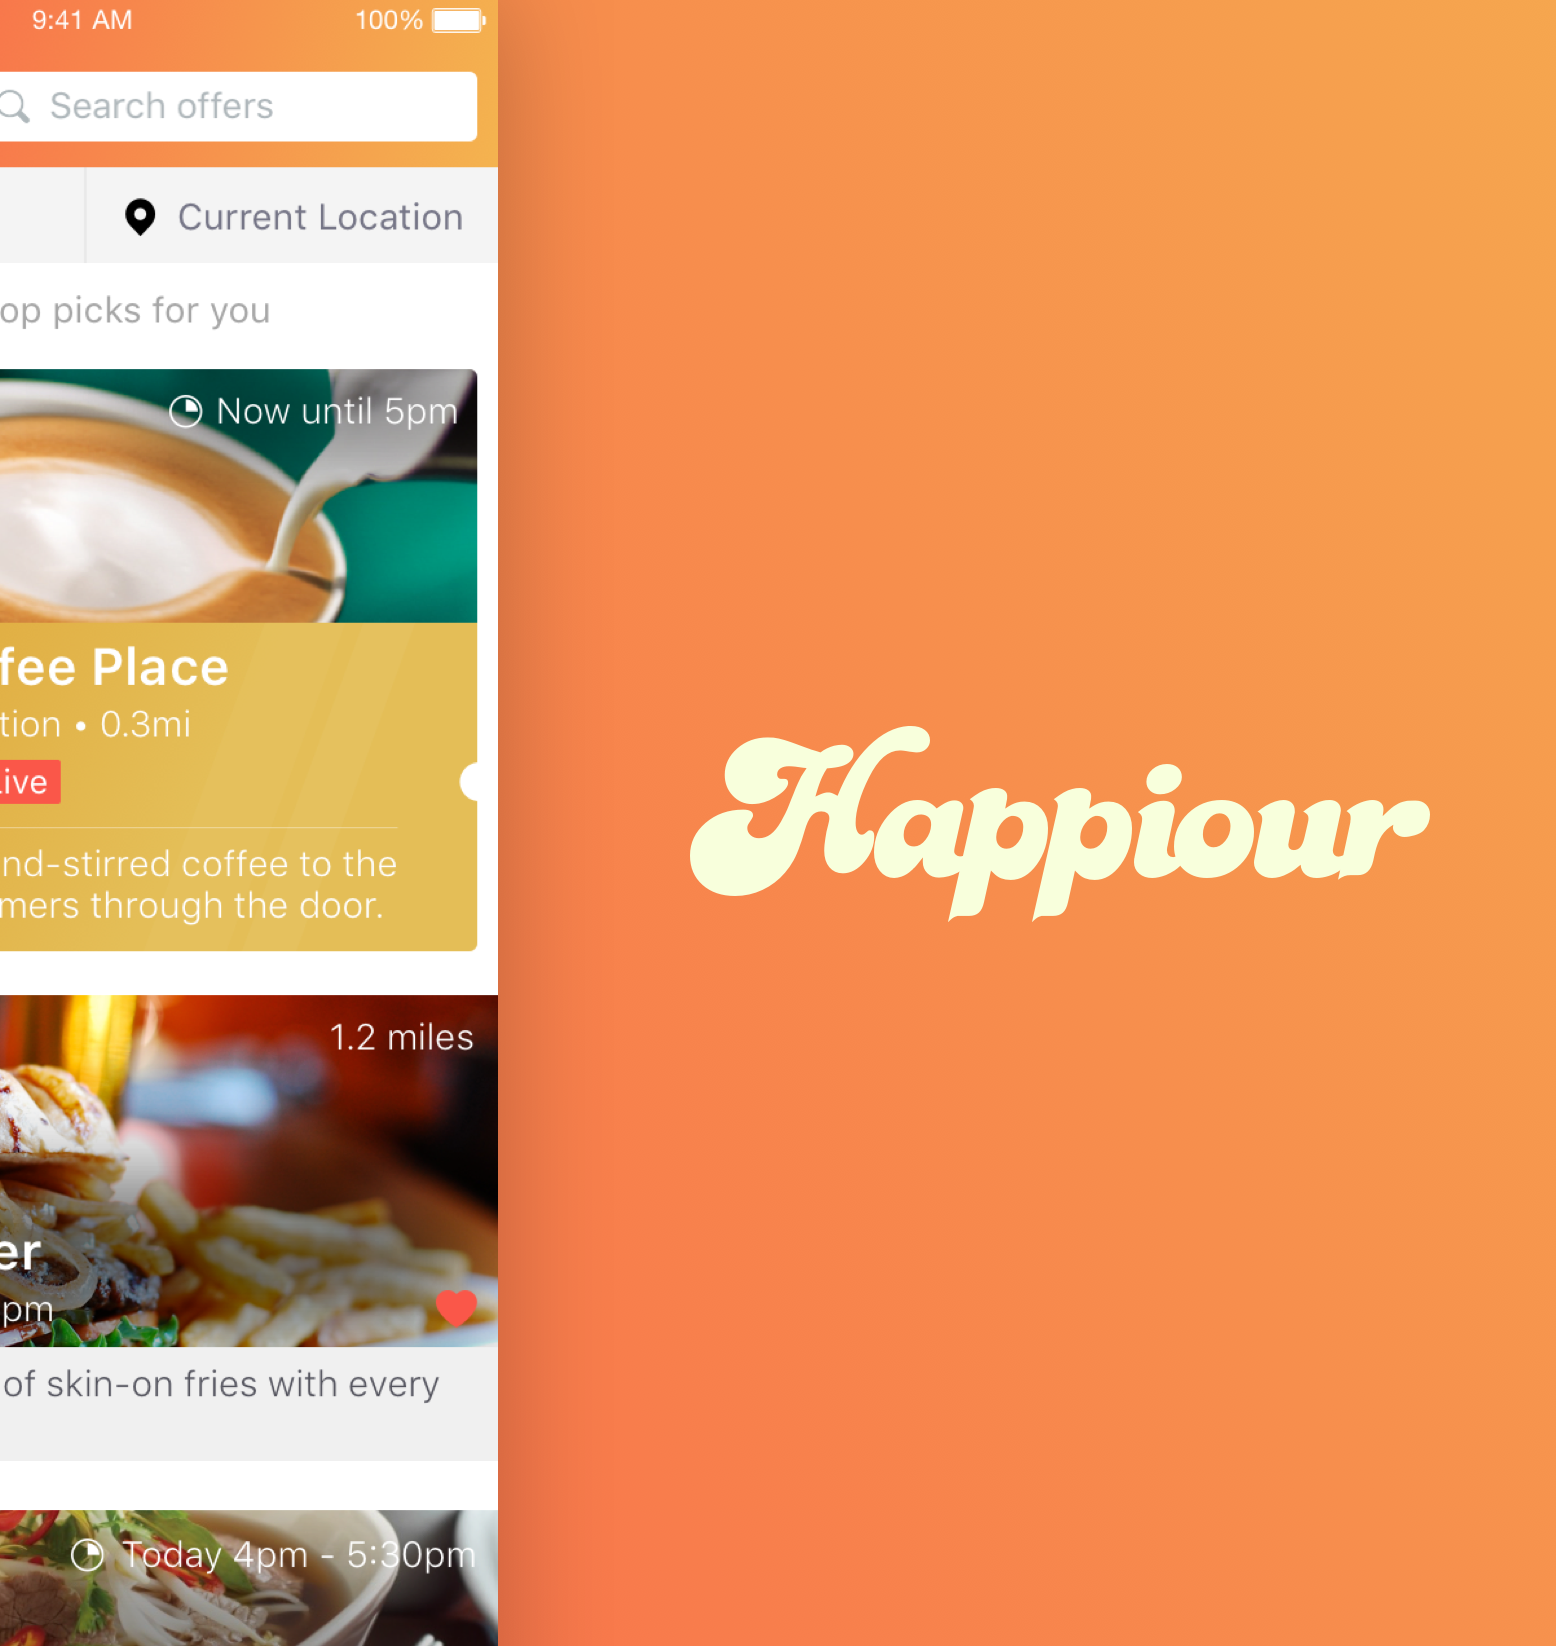 Happiour   Happiour is a hyper-local food and drink offers platform. I worked on the design, development and product management of the Happiour consumer app as part of a small team. The app went through various iterations and feature and design decisions were made based on quantitive usage data from our analytics monitoring and qualitative insights from talking directly to our users.